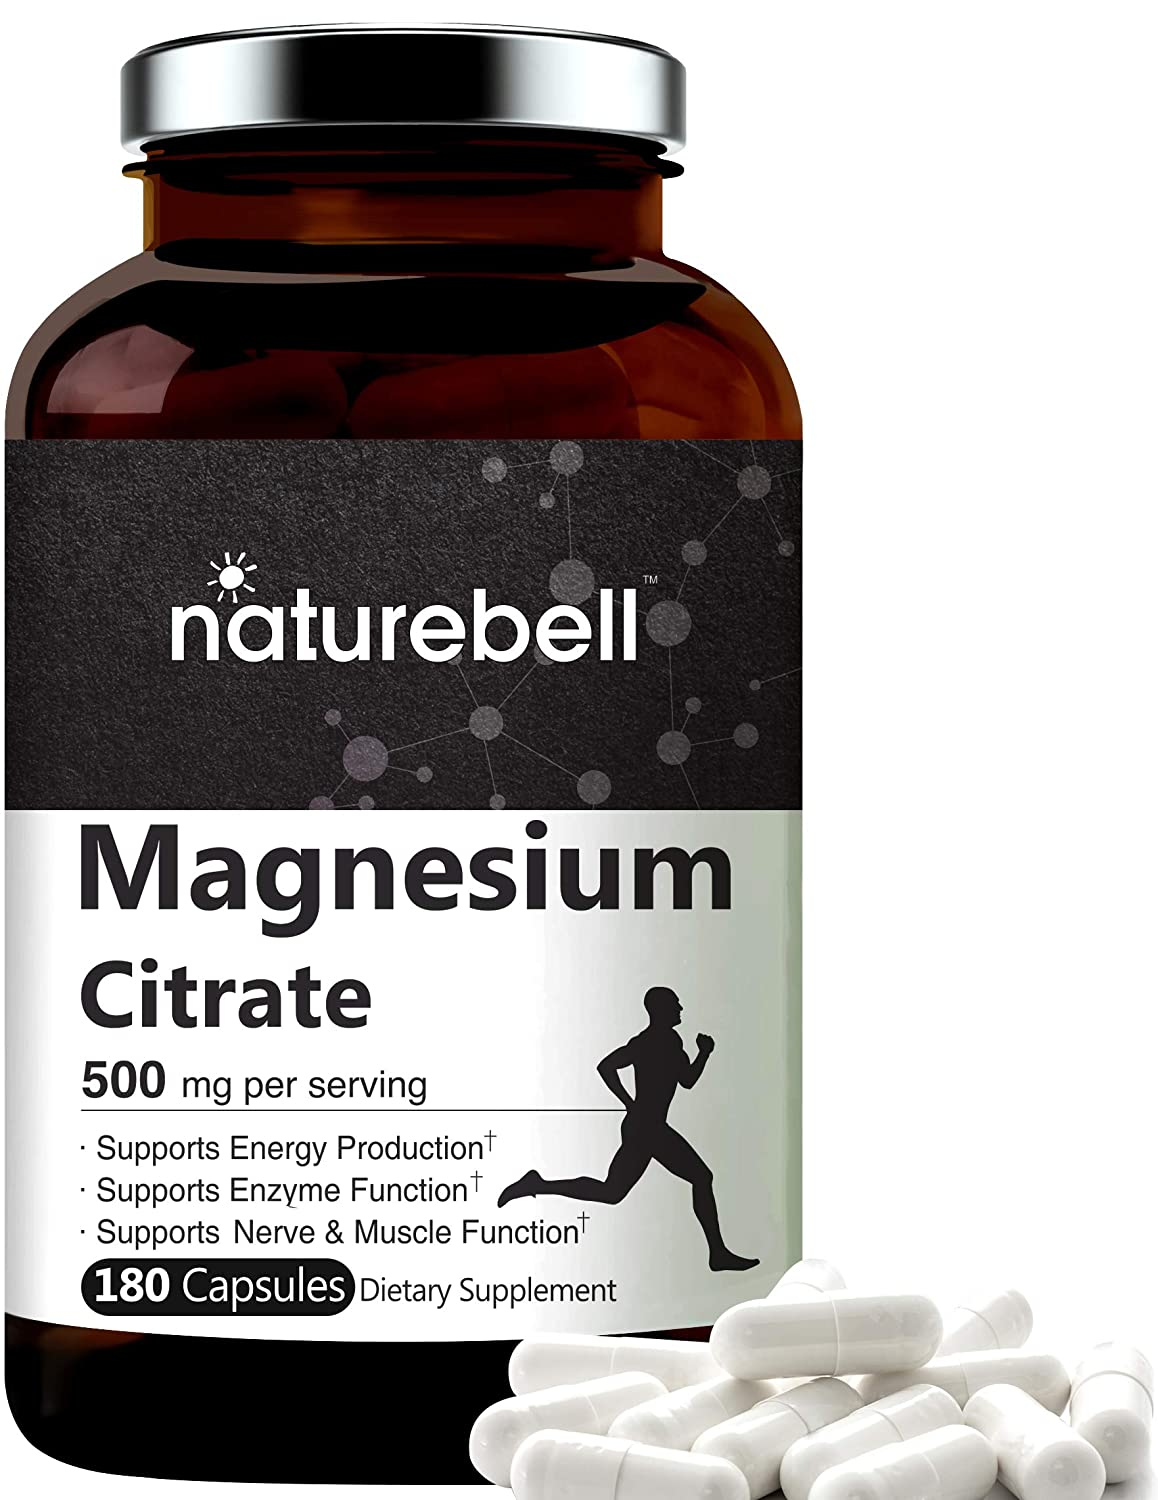 NatureBell Magnesium Citrate 500mg,180 Capsules, Powerfully Supports Energy, Metabolism, Muscles, Heart and Bone Health. No GMOs and Made in USA